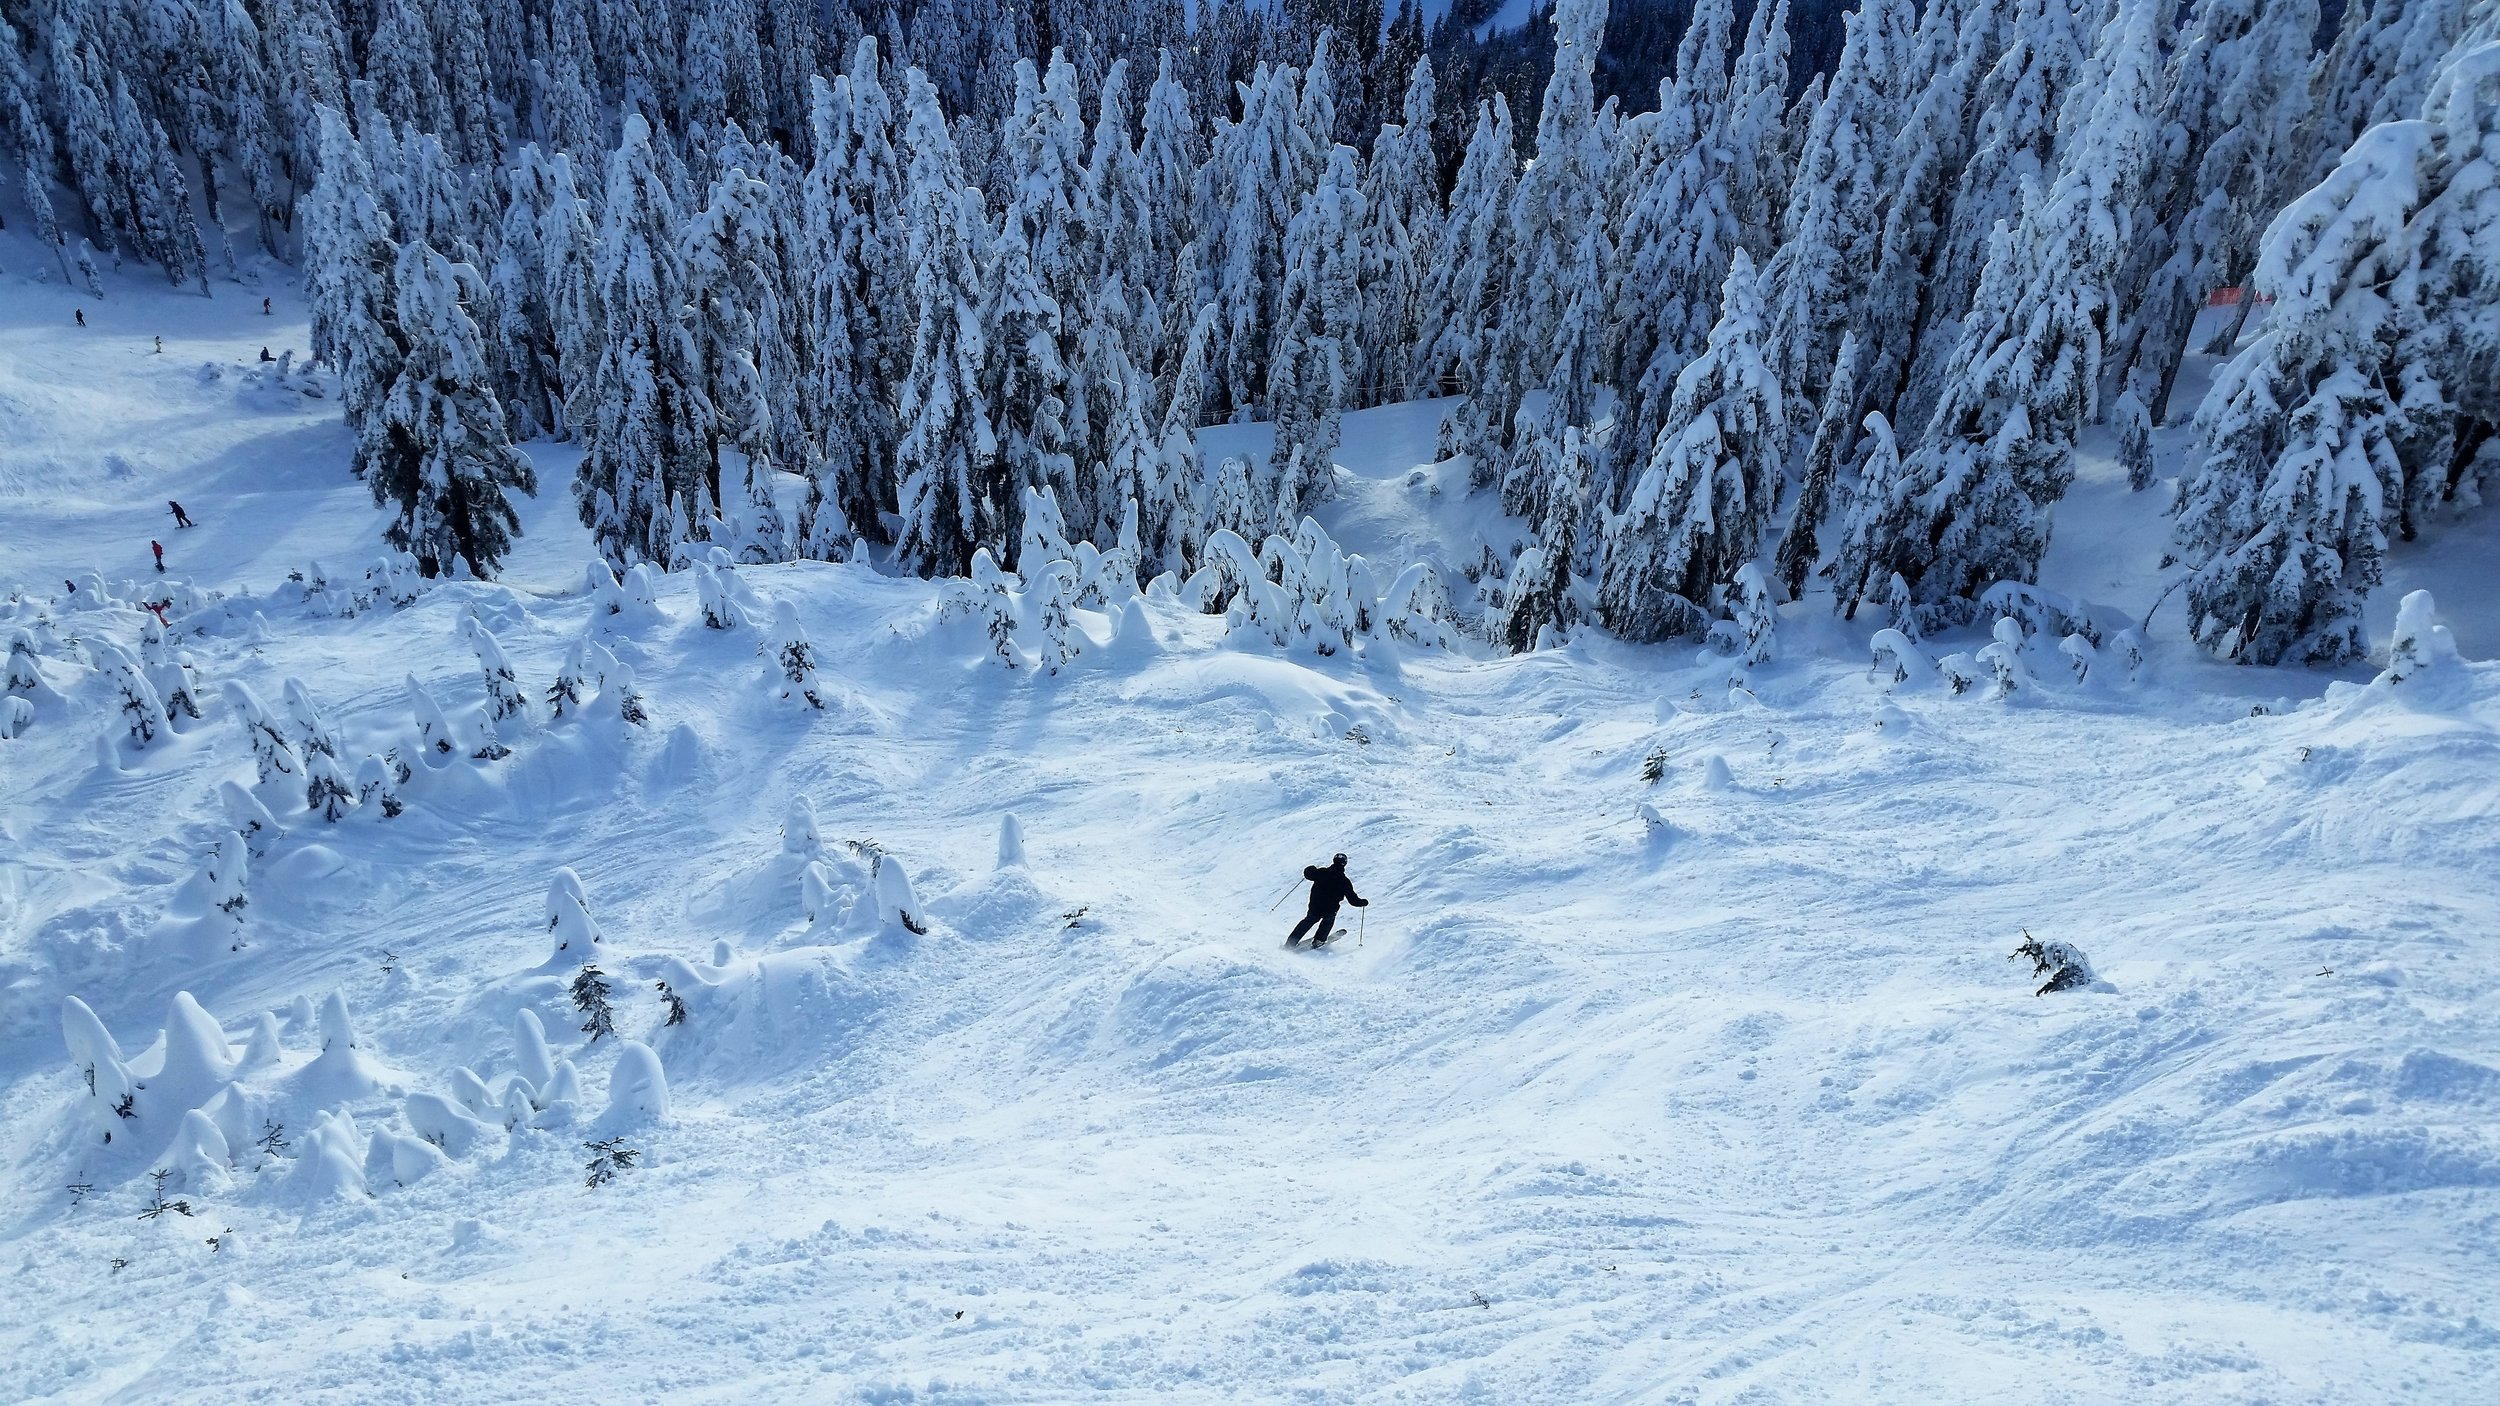 Enjoying a mogul run at the local mountains in Vancouver